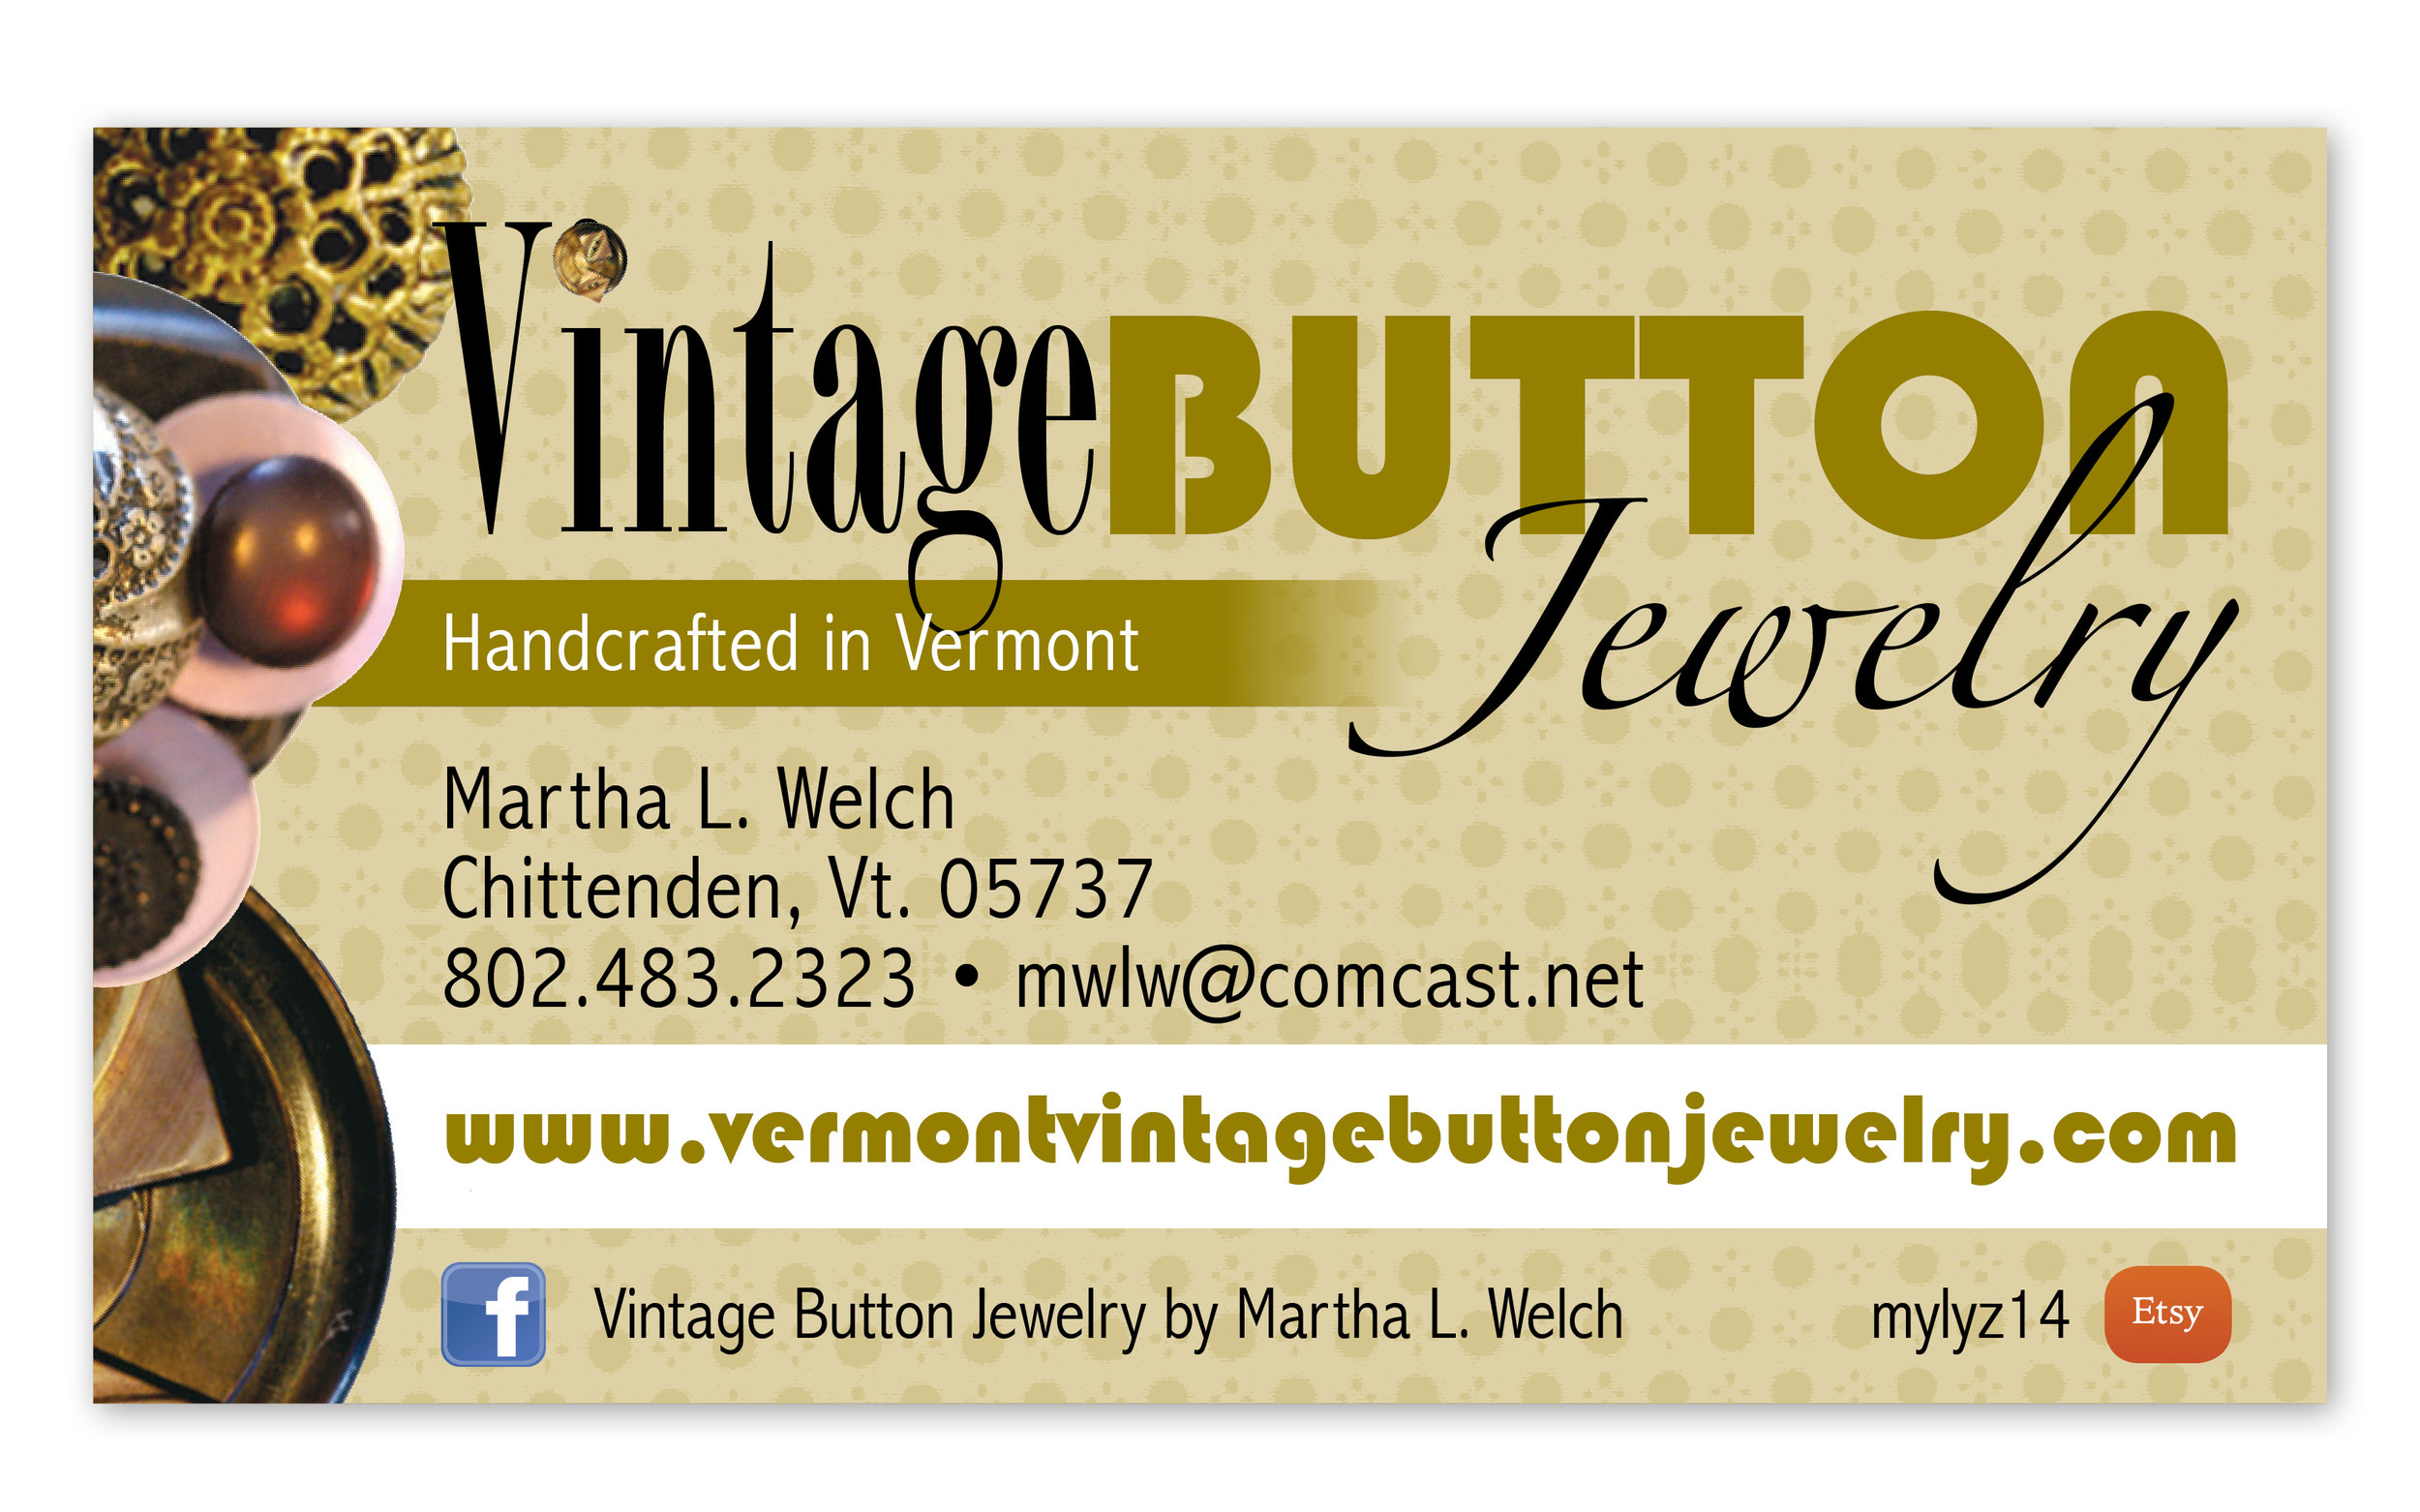 Client:  Vintage Button Jewelry by Martha Welch